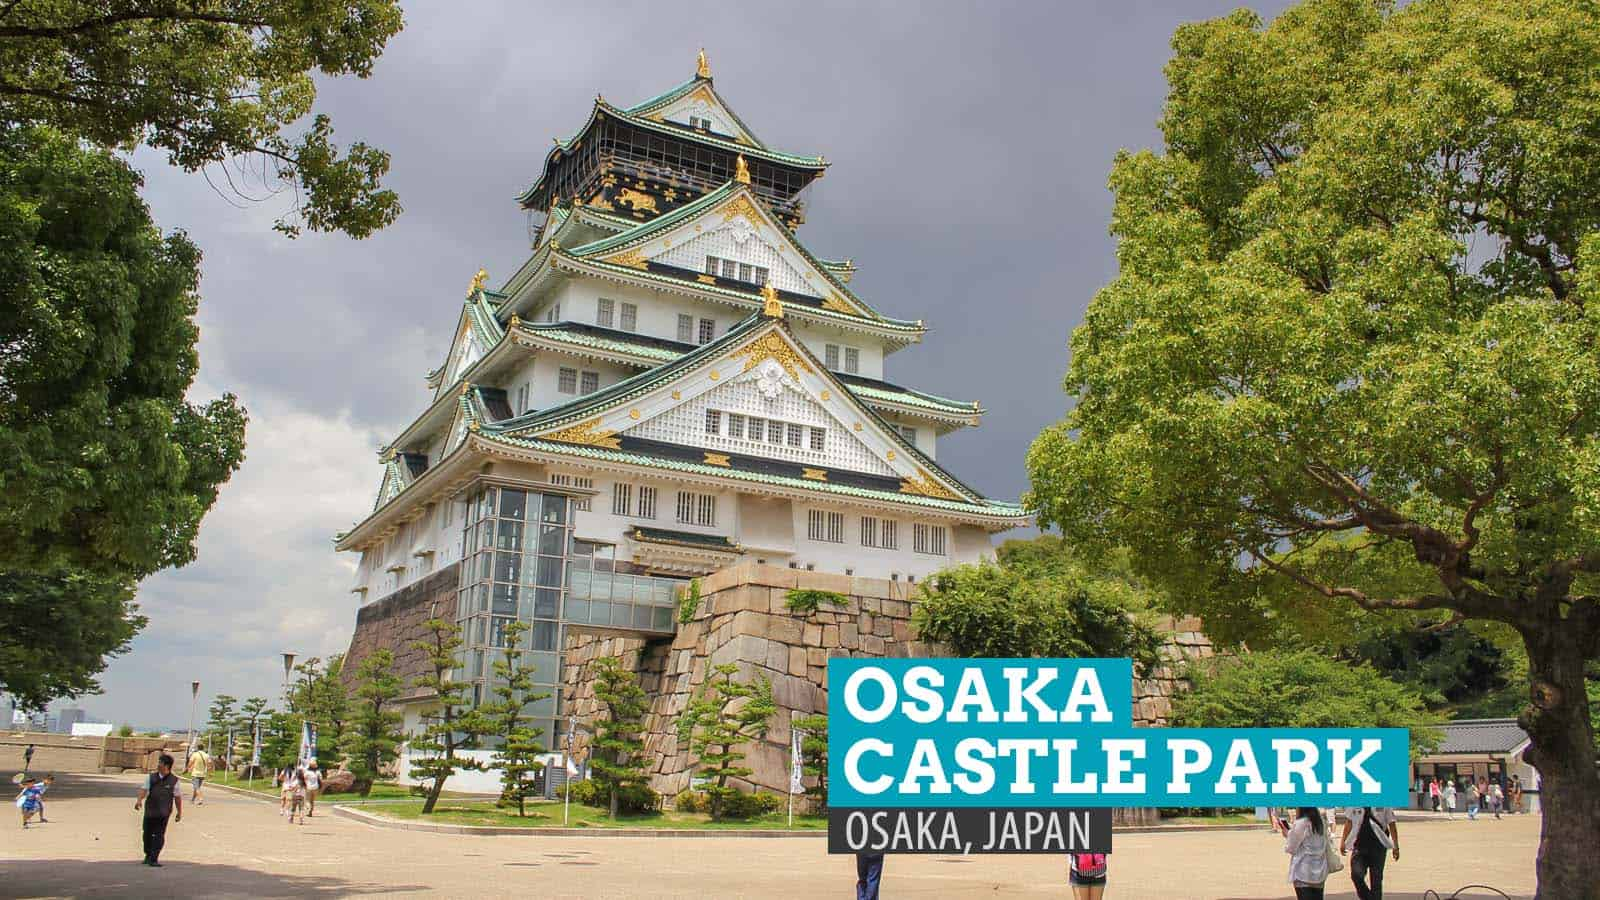 Osaka Castle Park, Japan: Toyotomi's Dream